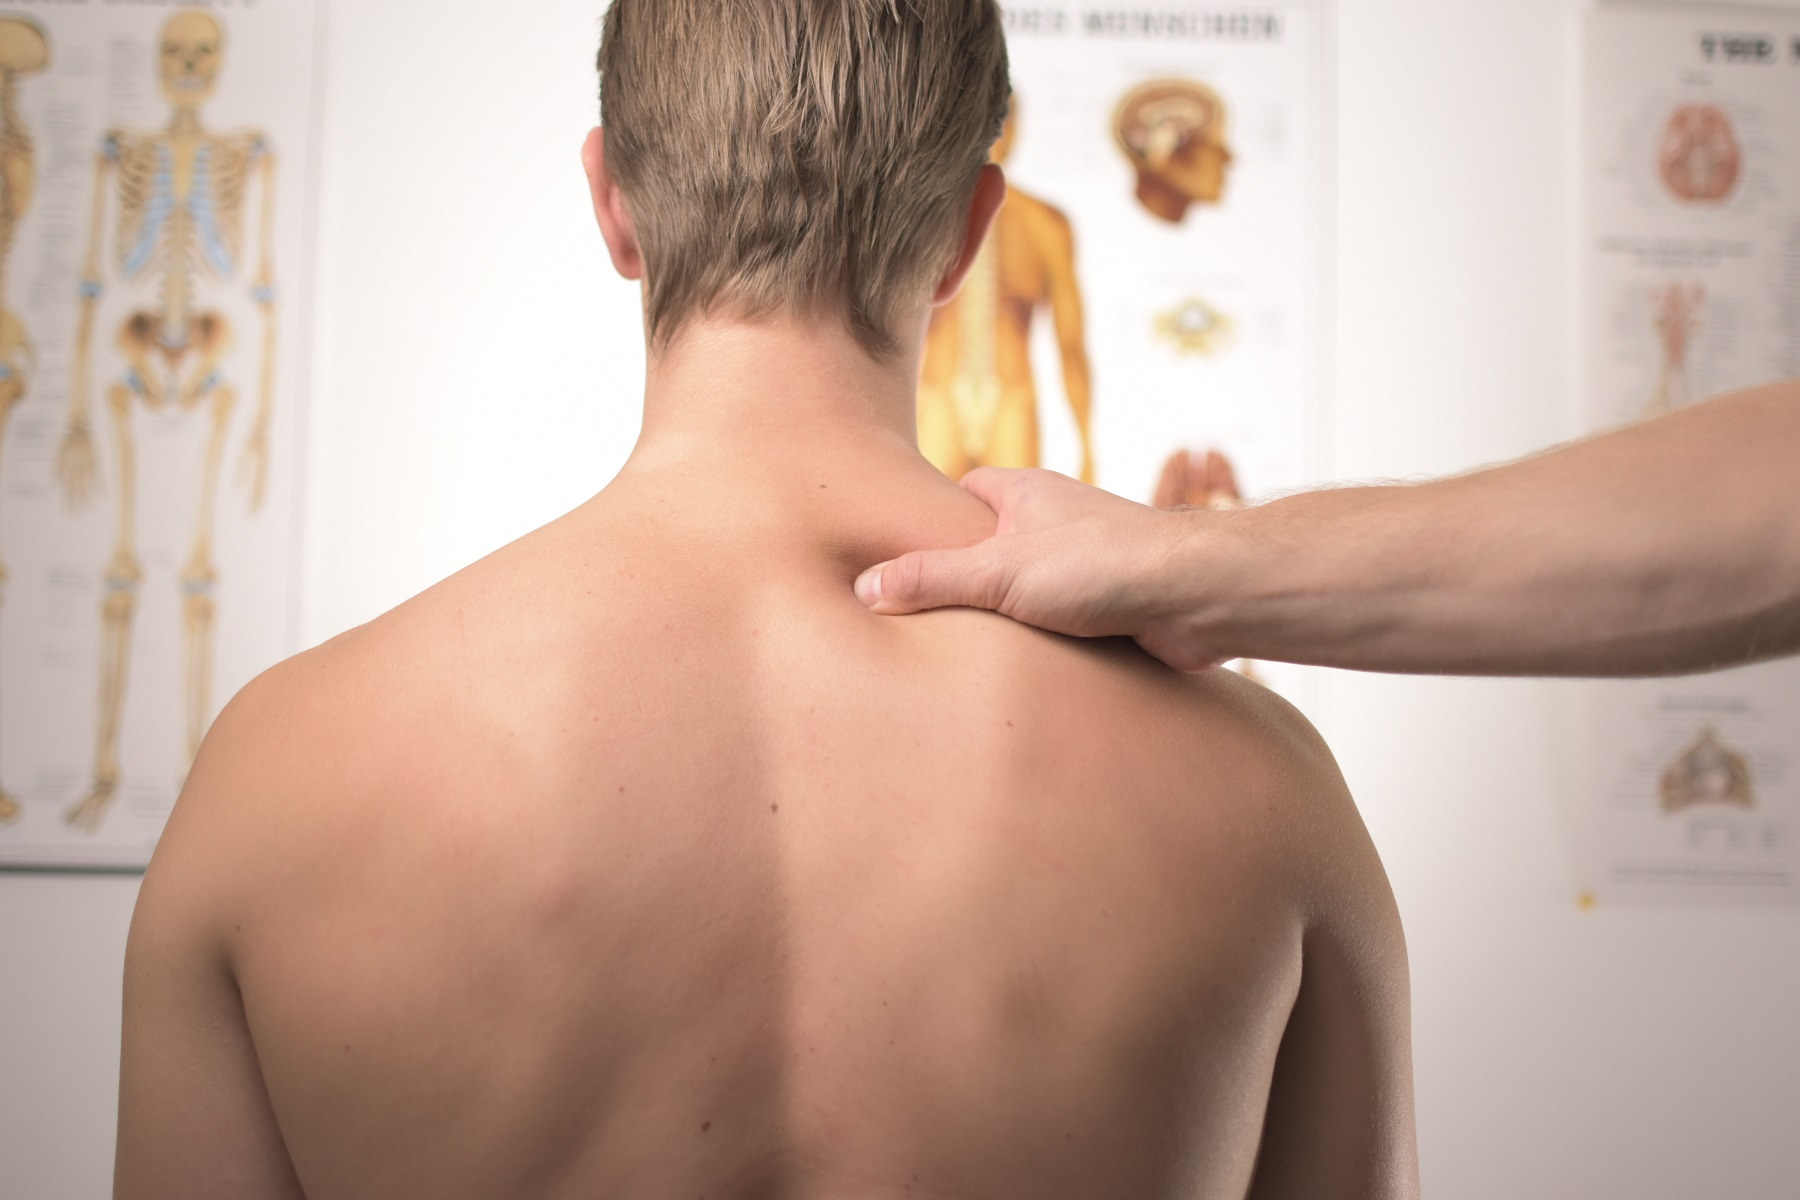 Got A Bad Back? Here's A Plan To Fix It